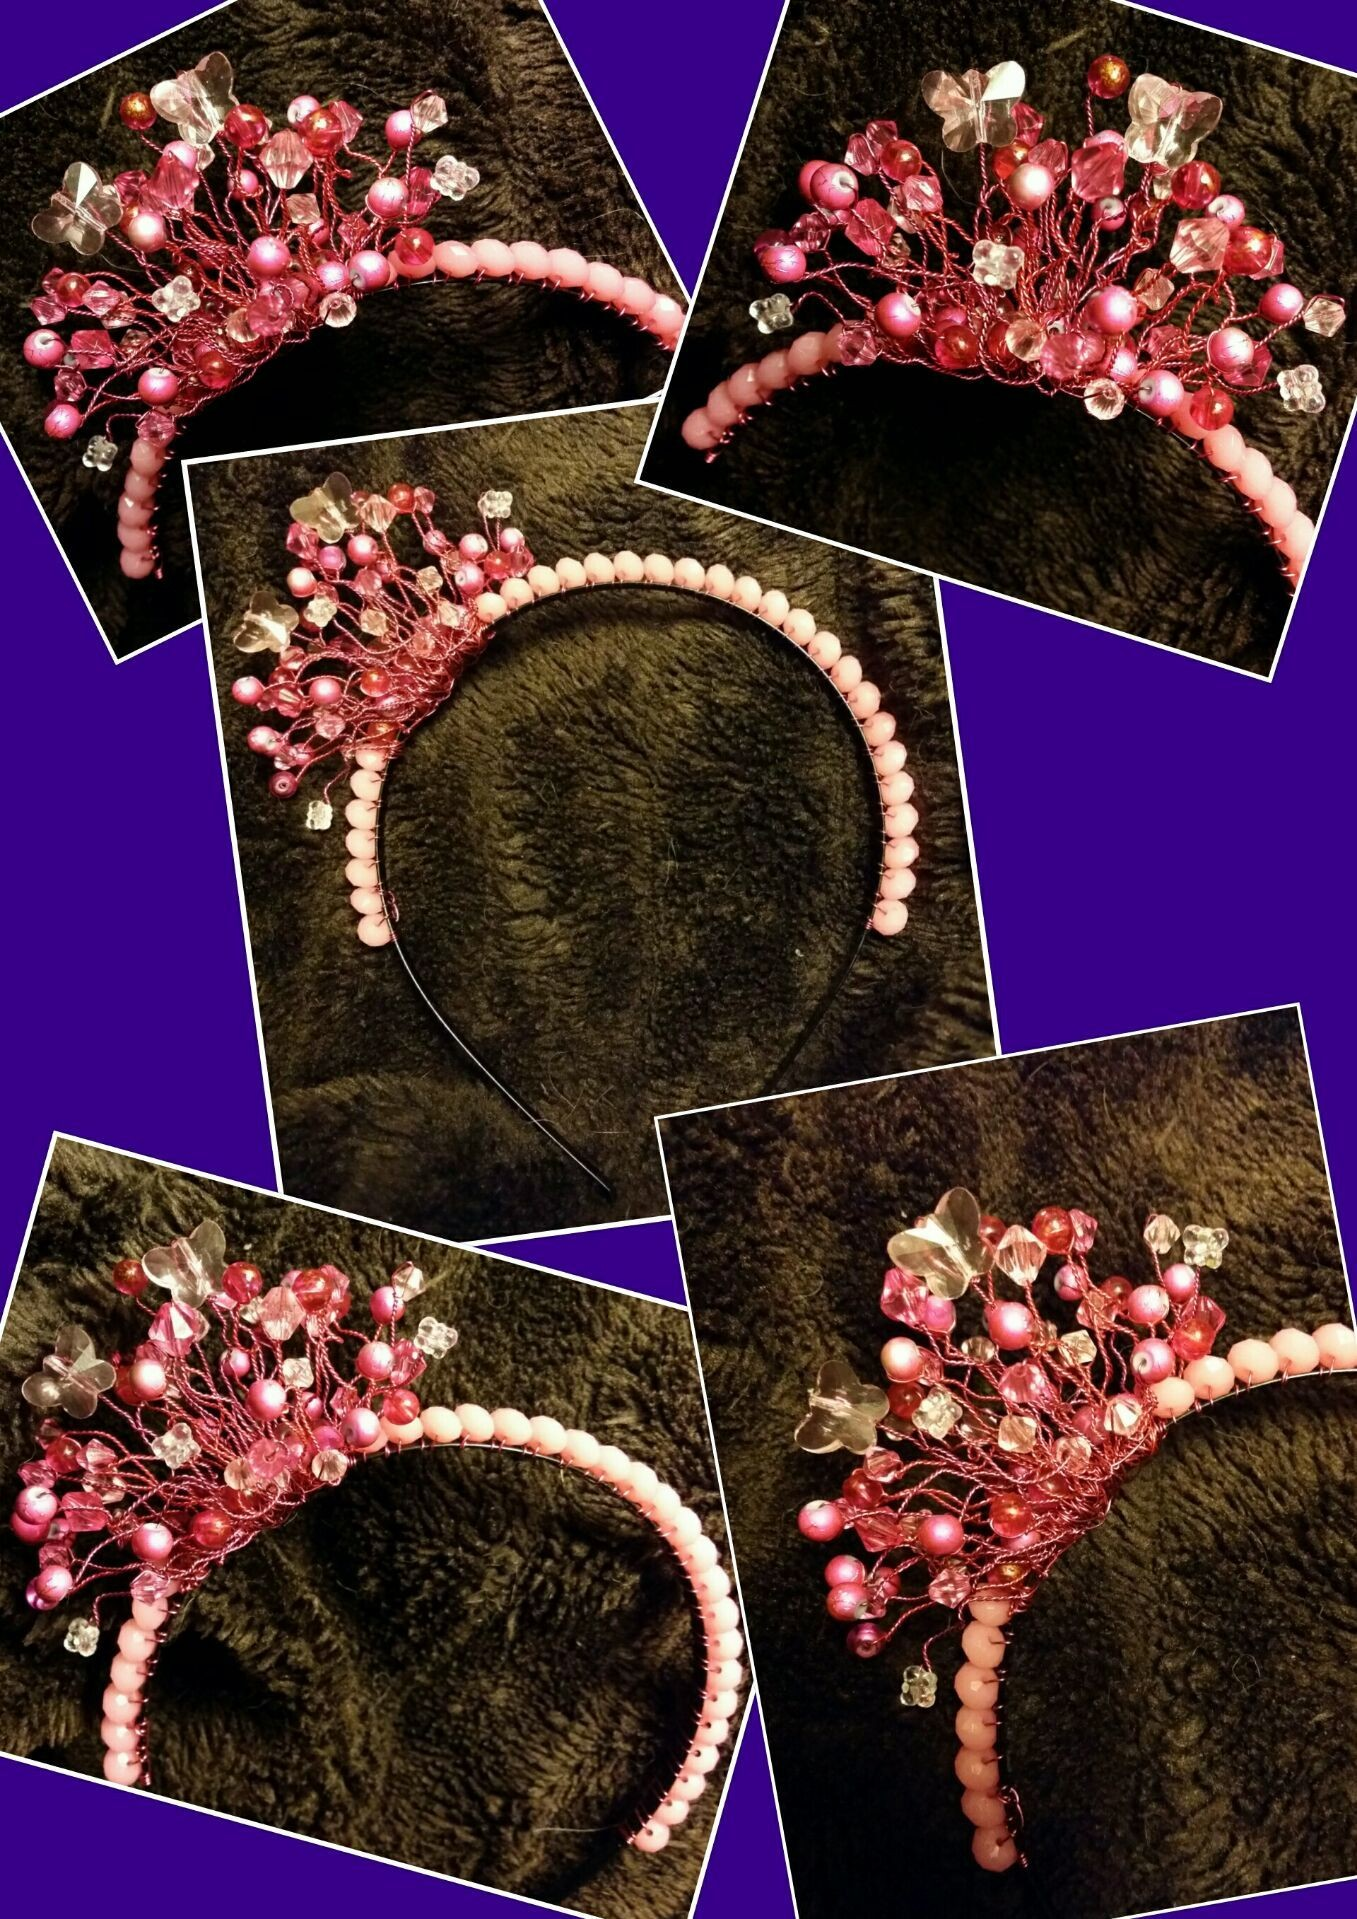 Bridesmaid/Prom/Dress-up Tiara or Headband in pinks. I also included 5 butterflies as I know the little girl loves them - £15